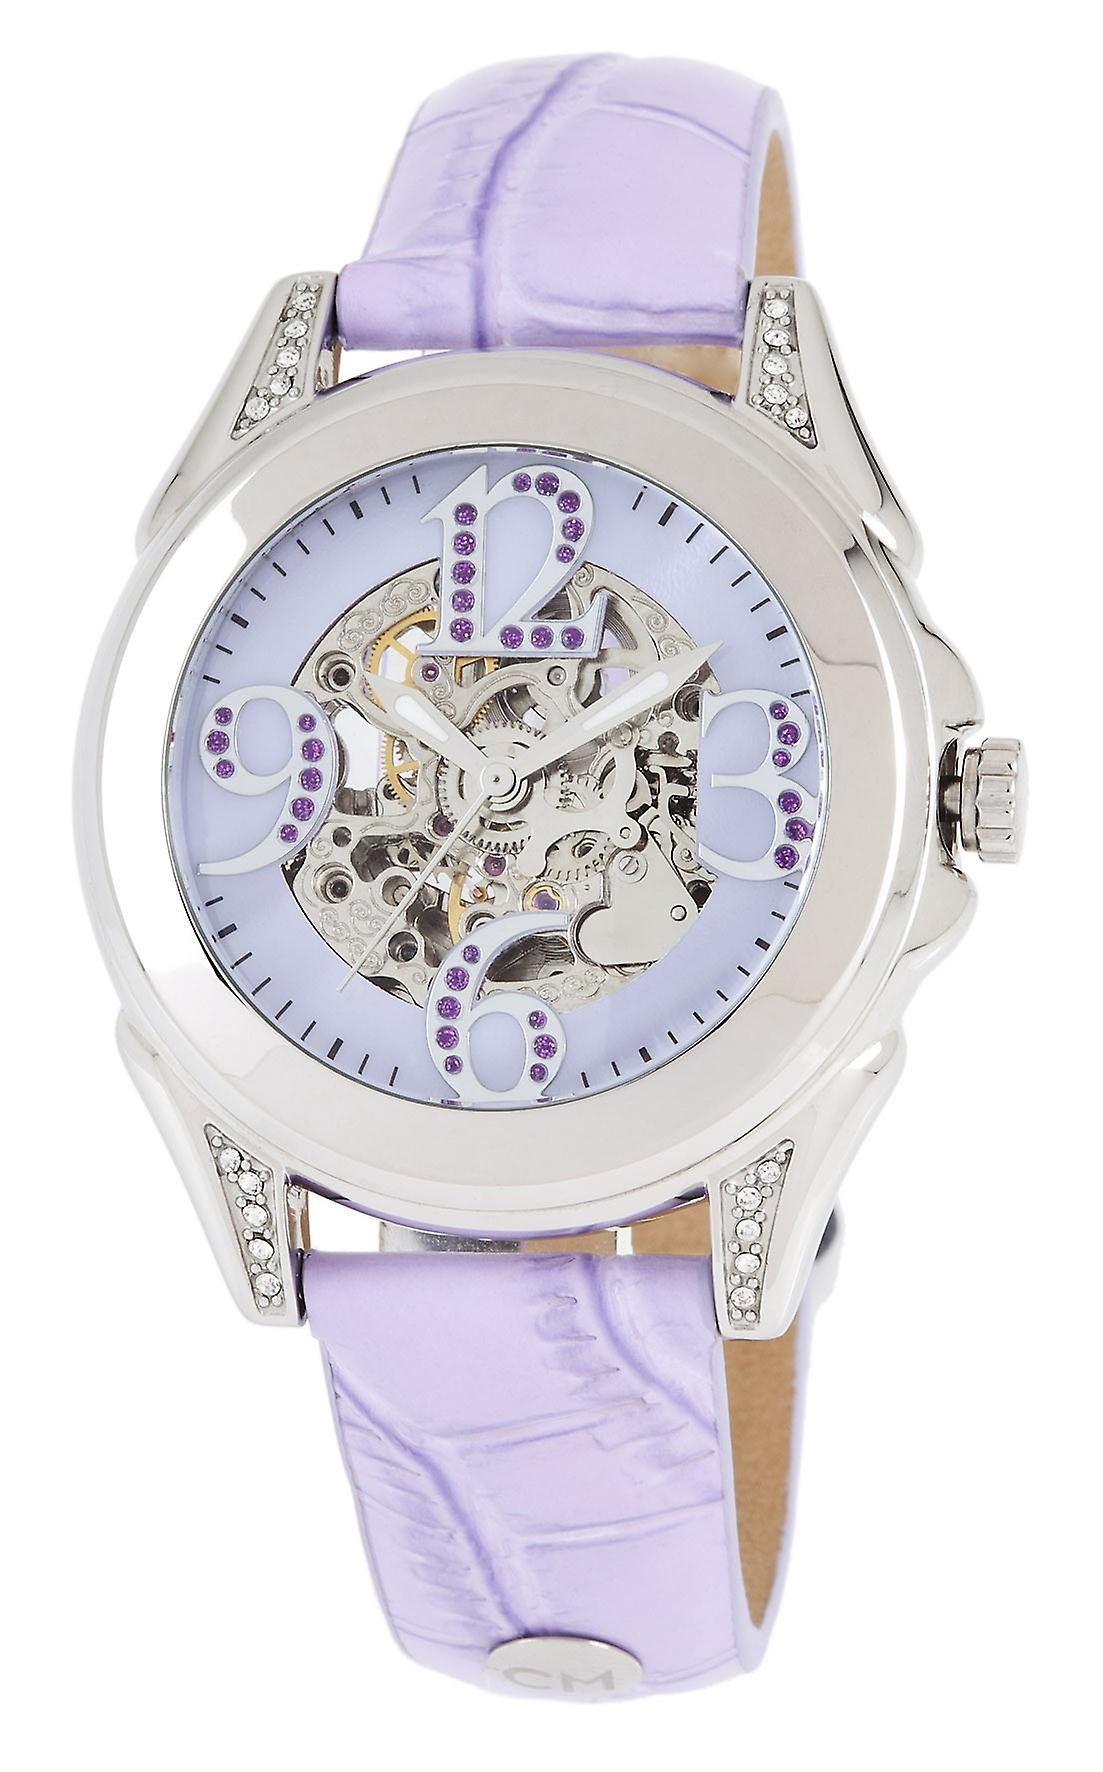 Carlo Monti  Women's Automatic Watch Messina CM801-190